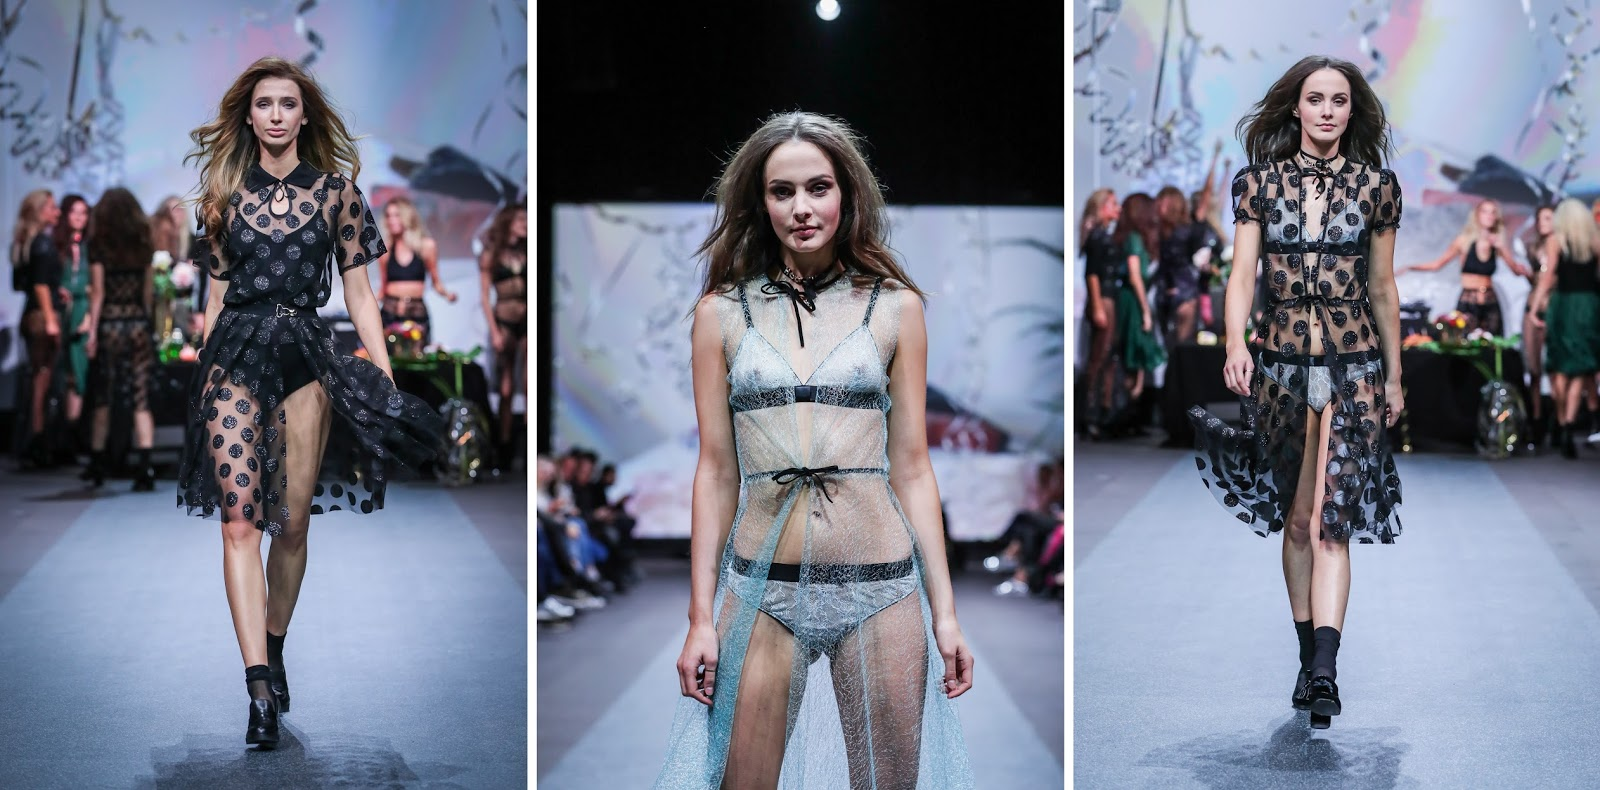 tallinn fashion week 2016 kriss soonik